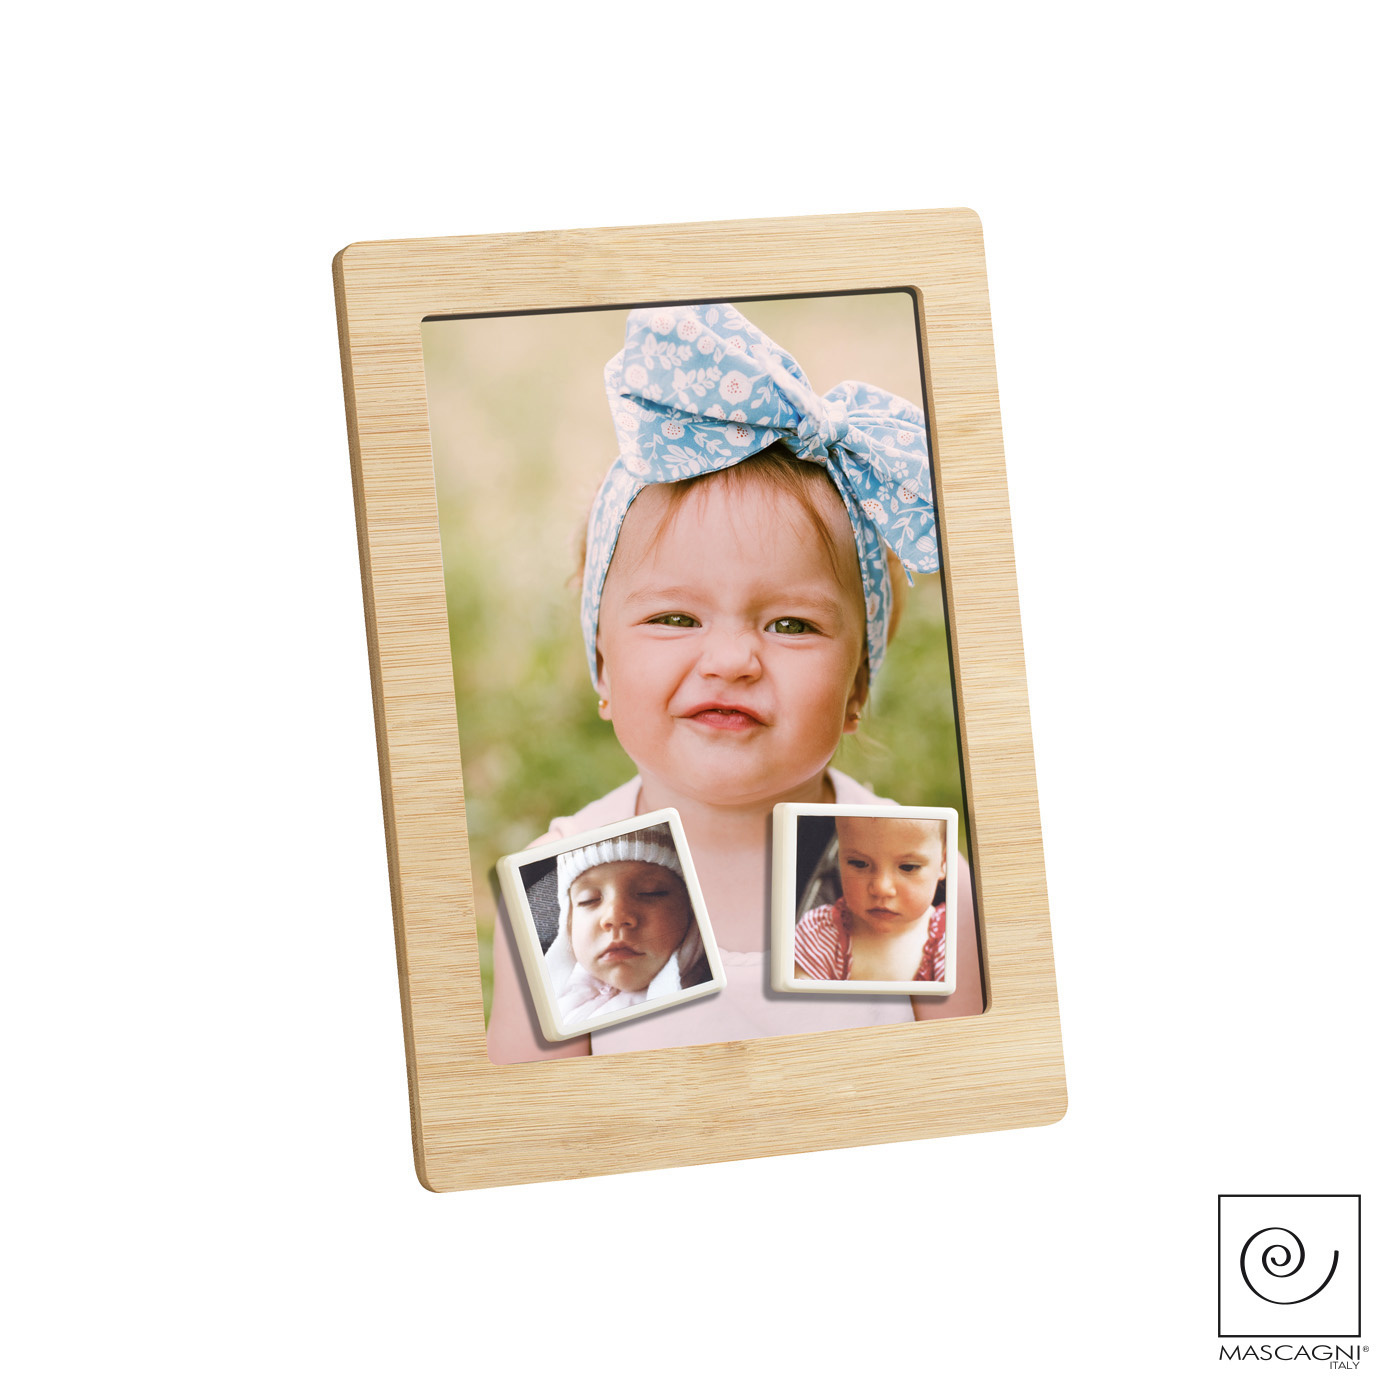 Art Mascagni A940 PHOTO FRAME 13X18 WITH 2 AIMANT